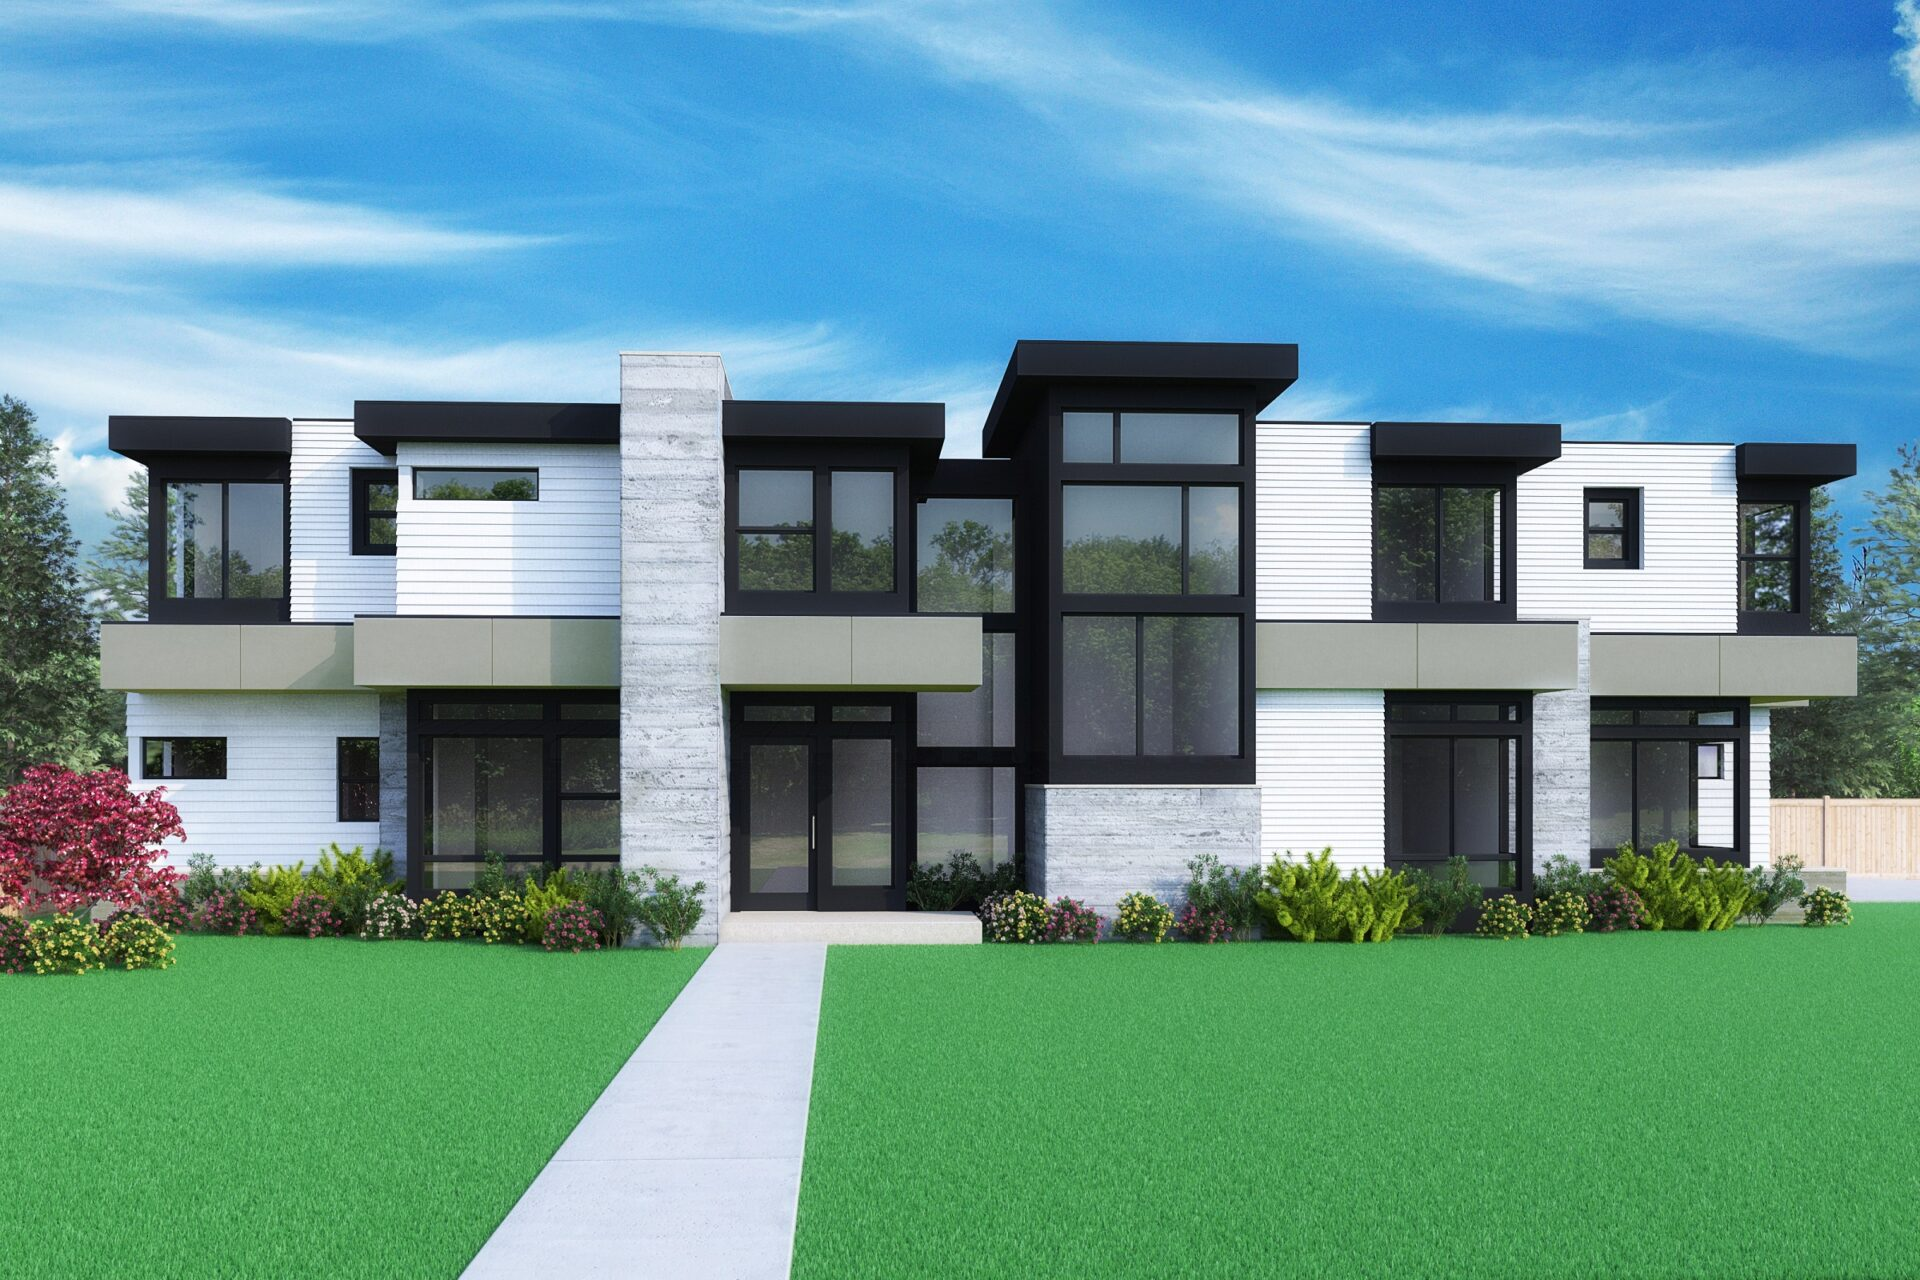 View our new luxury home construction on 9604 NE 25th St, in Bellevue, WA from MN Custom Homes